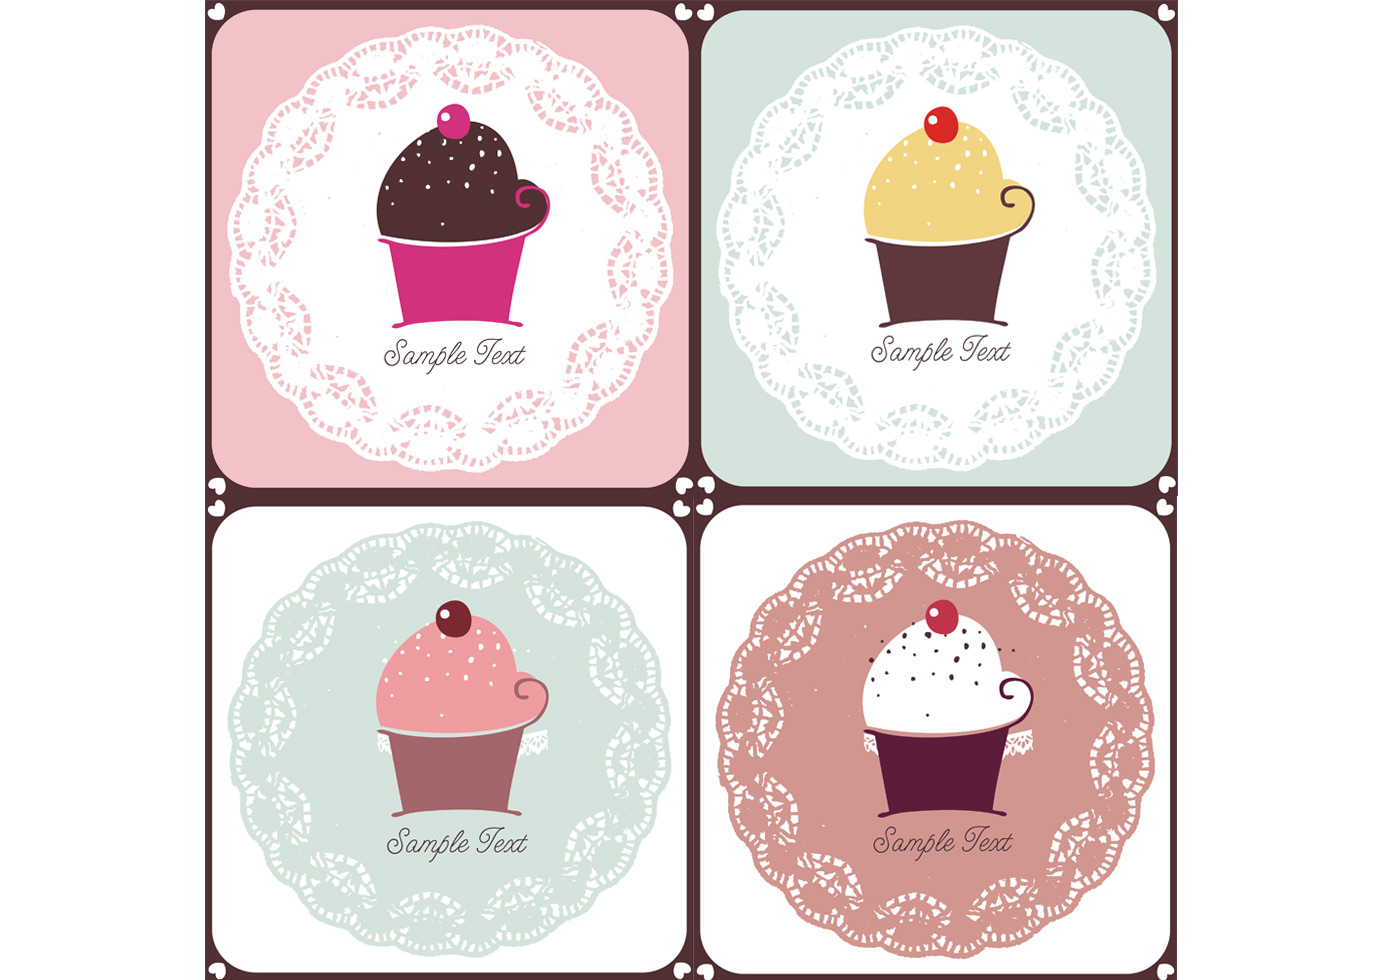 Doilies-and-cupcakes-vector-pack